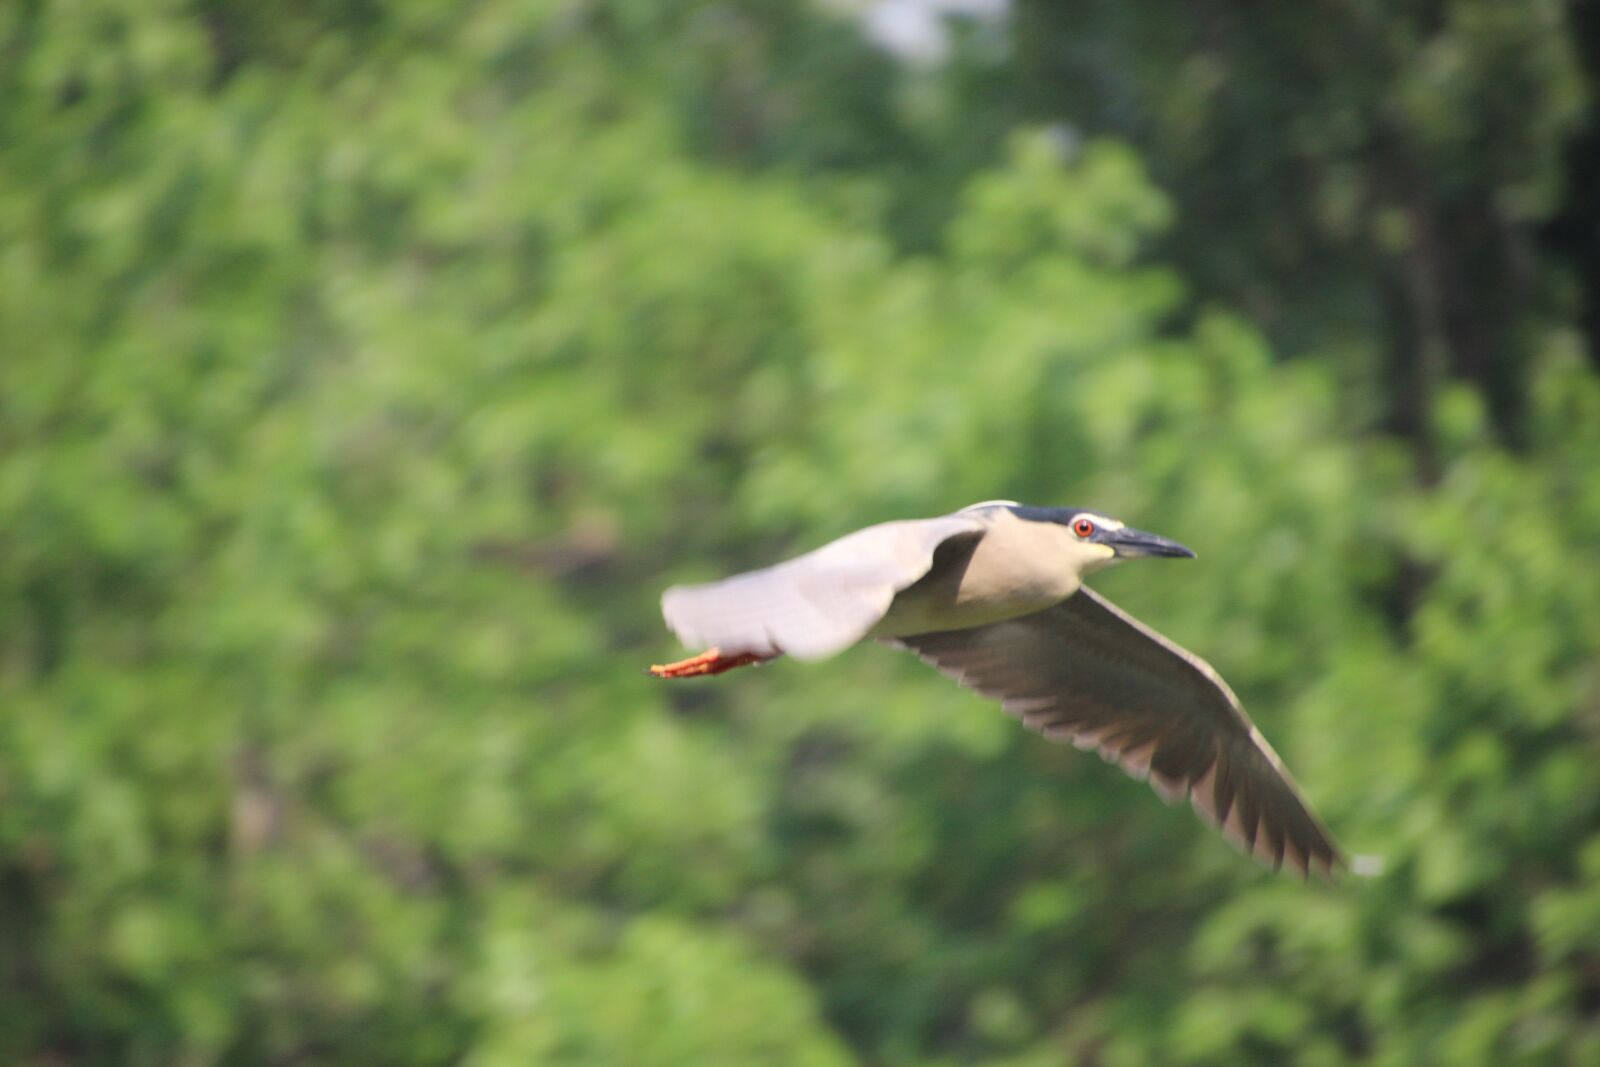 """Canon EOS 600D (Rebel EOS T3i / EOS Kiss X5) sample photo. """"Night heron, flying, water"""" photography"""